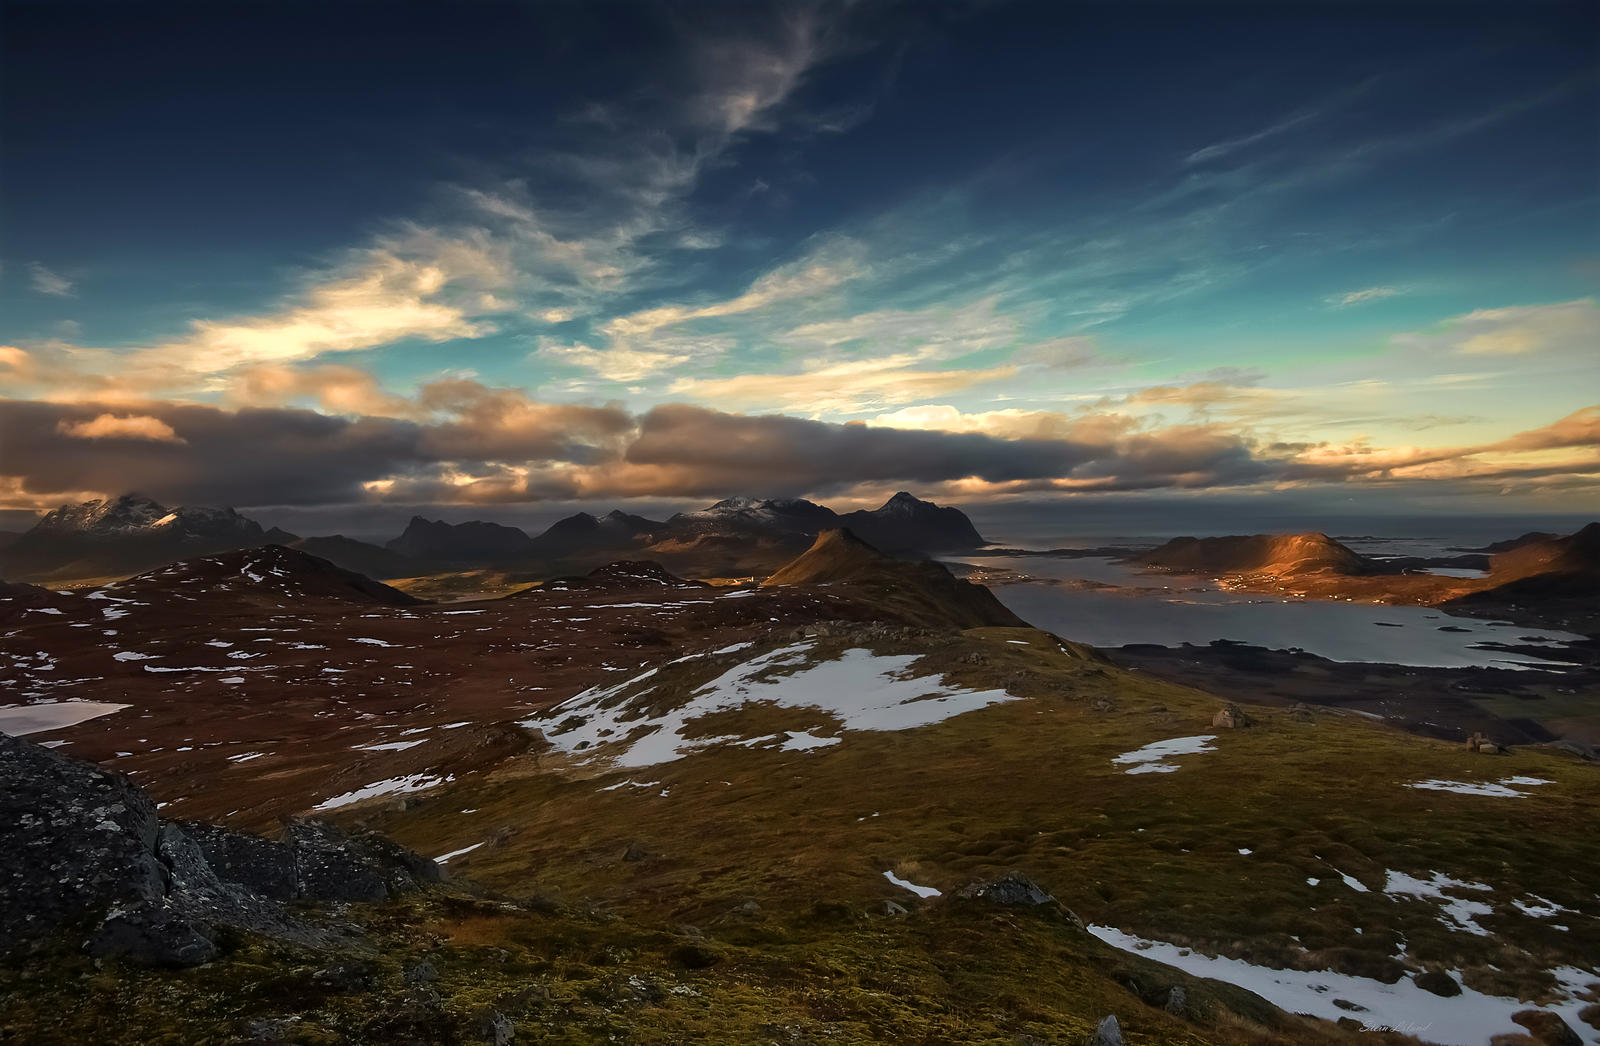 From Brattflogan Lofoten by steinliland